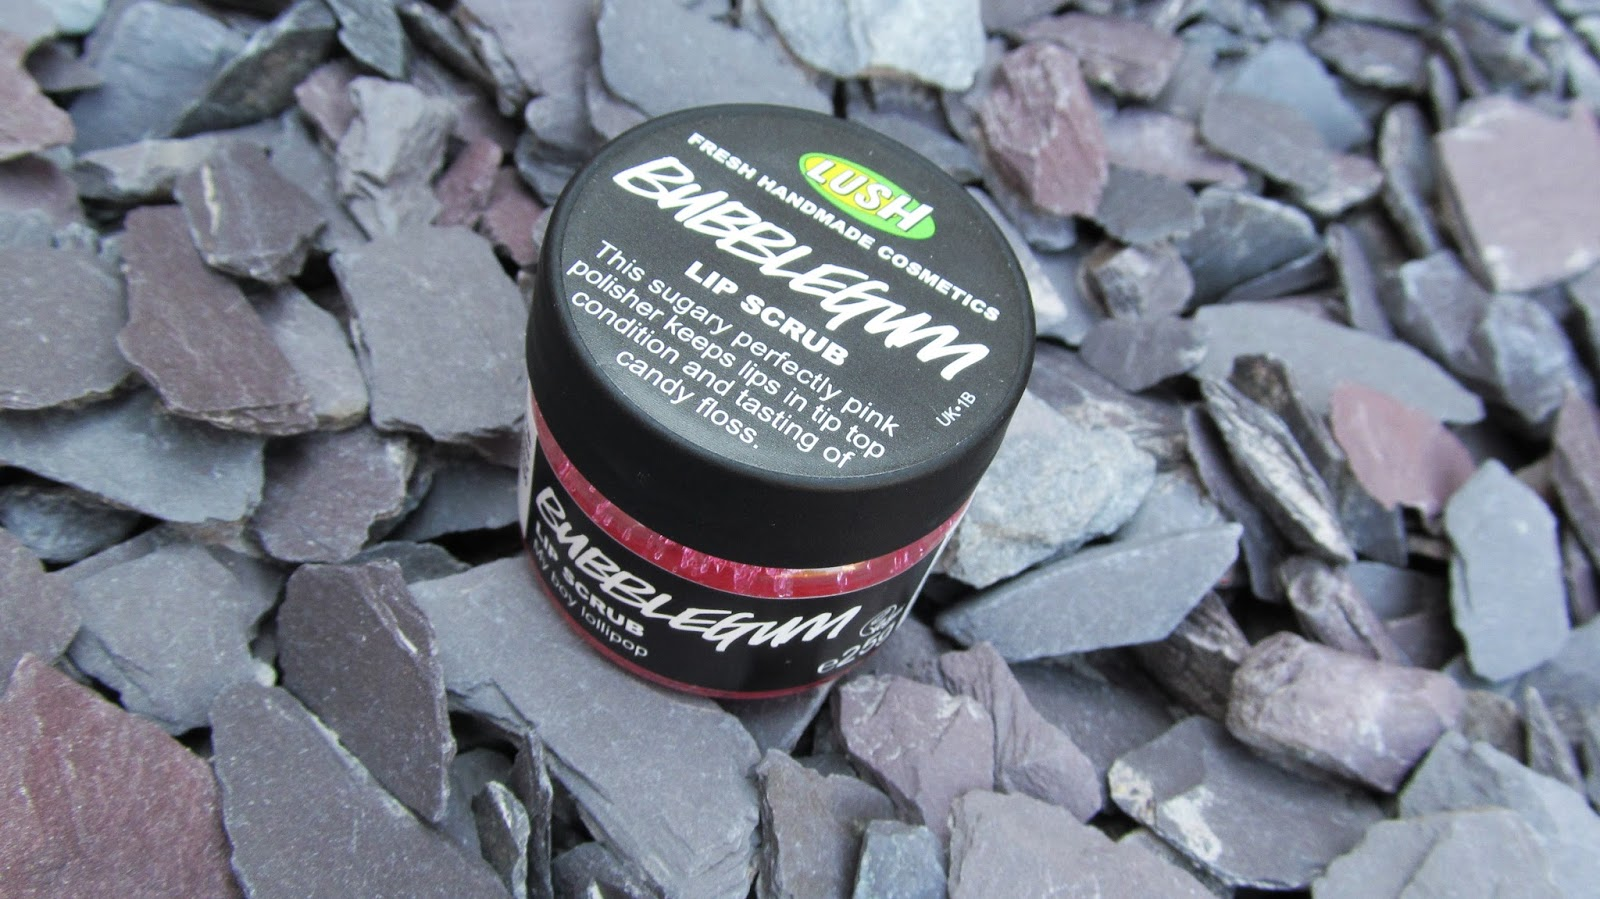 lush bubblegum lip scrub review blog